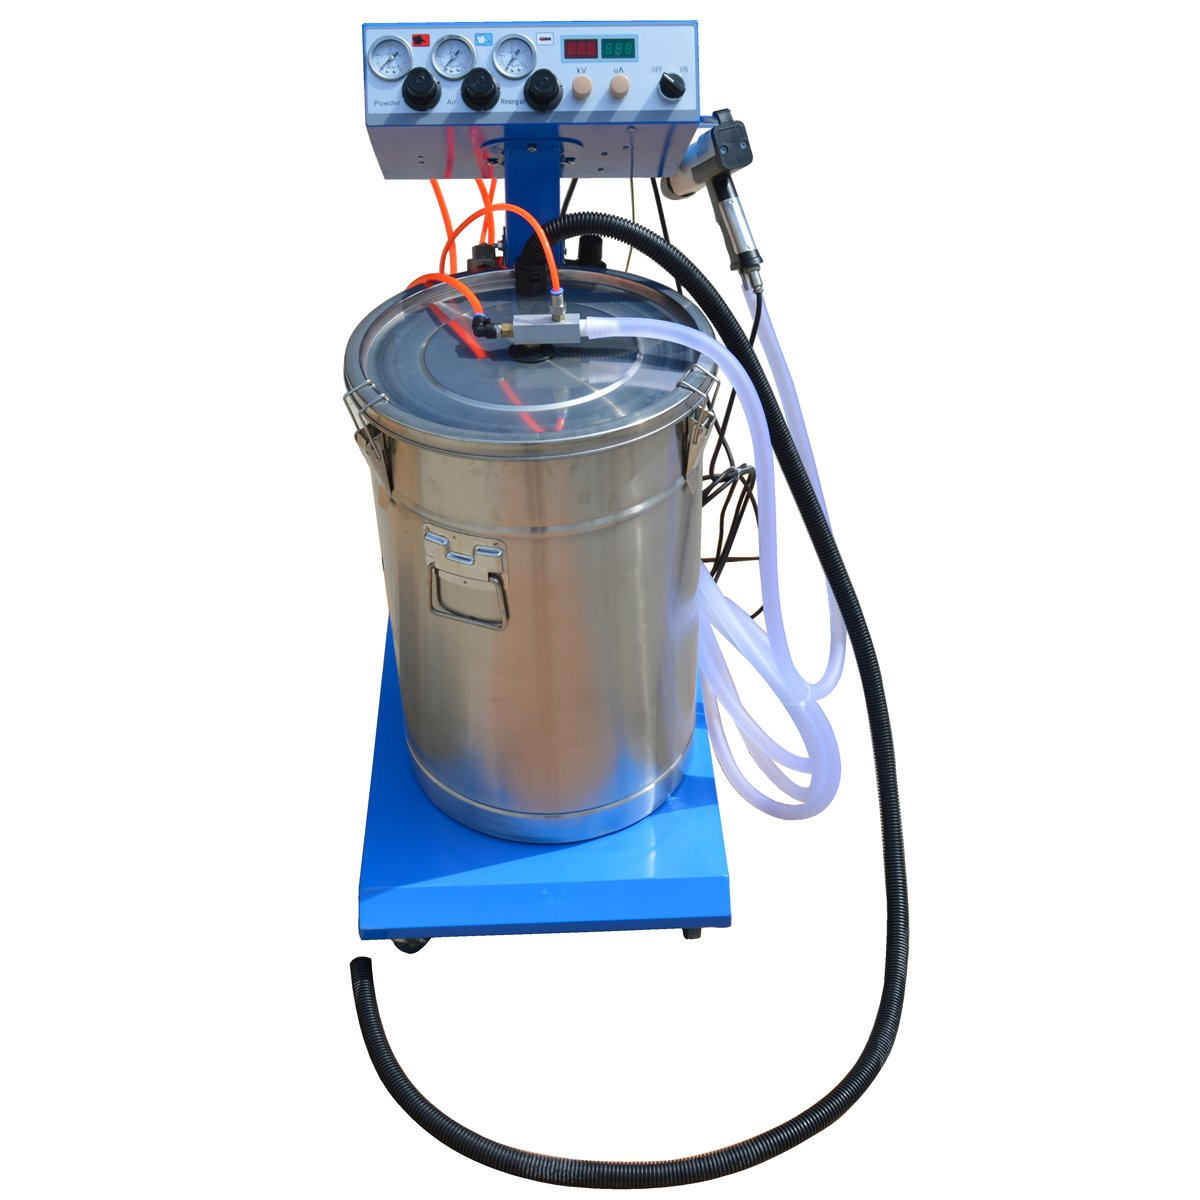 TECHTONGDA 110V WX-958 Powder Coating System with Spraying Gun Powder Coating Machine(item#251901)